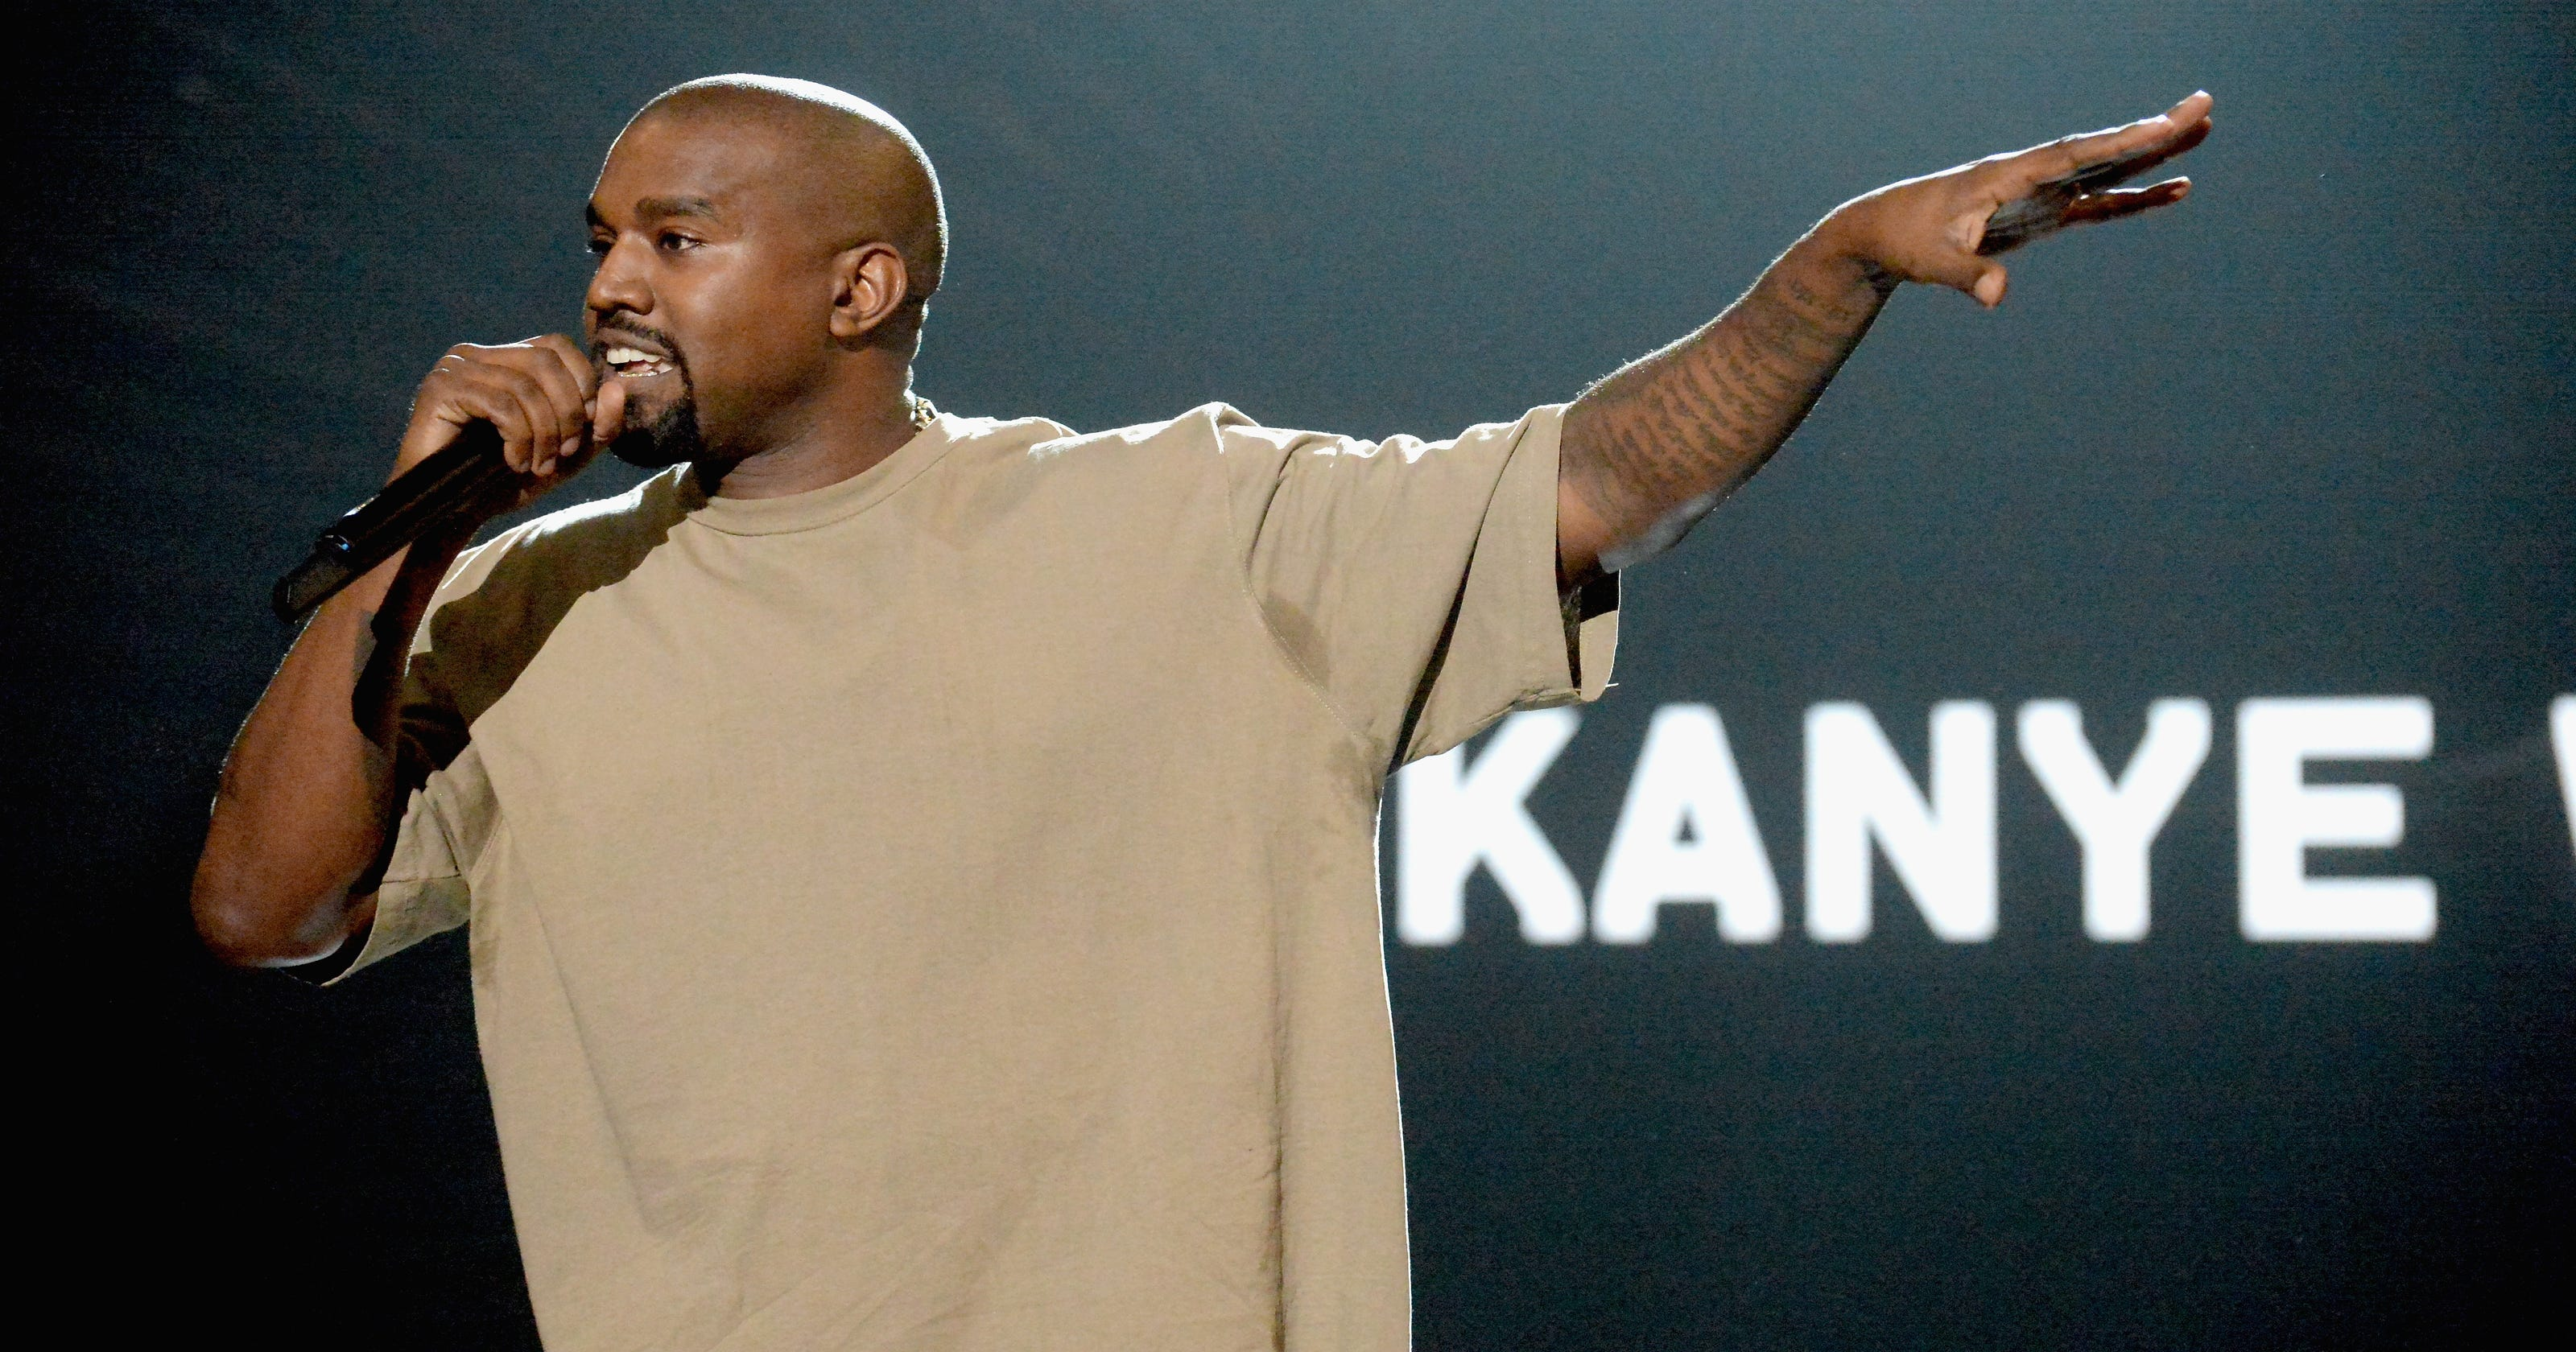 September Concert Guide Kanye West Jason Aldean